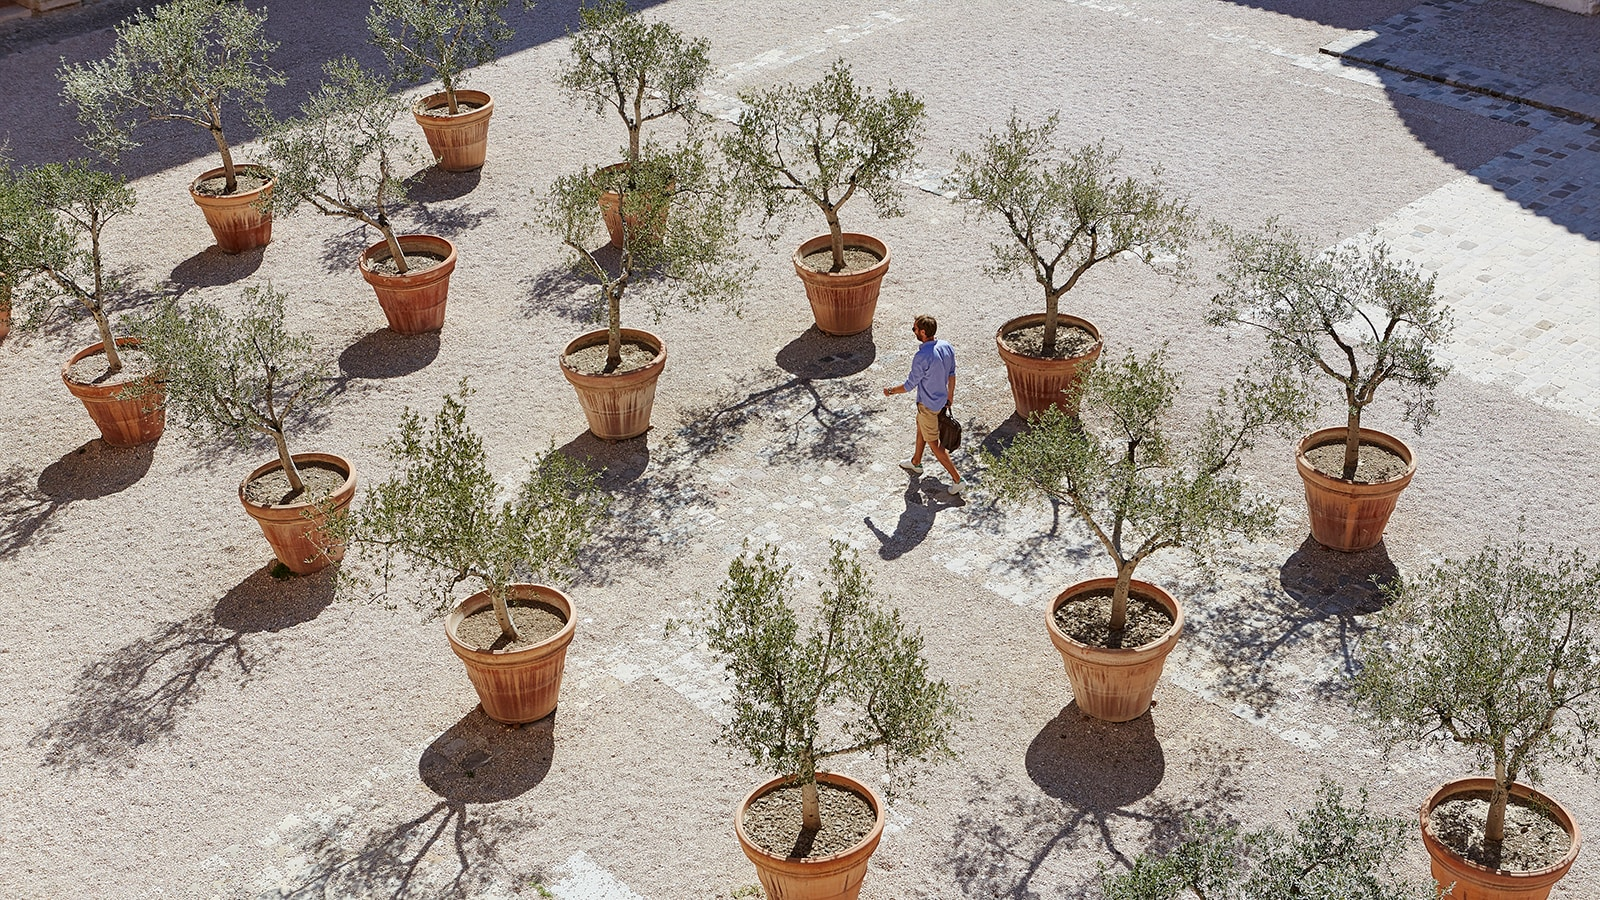 Organised rows of pots with trees in